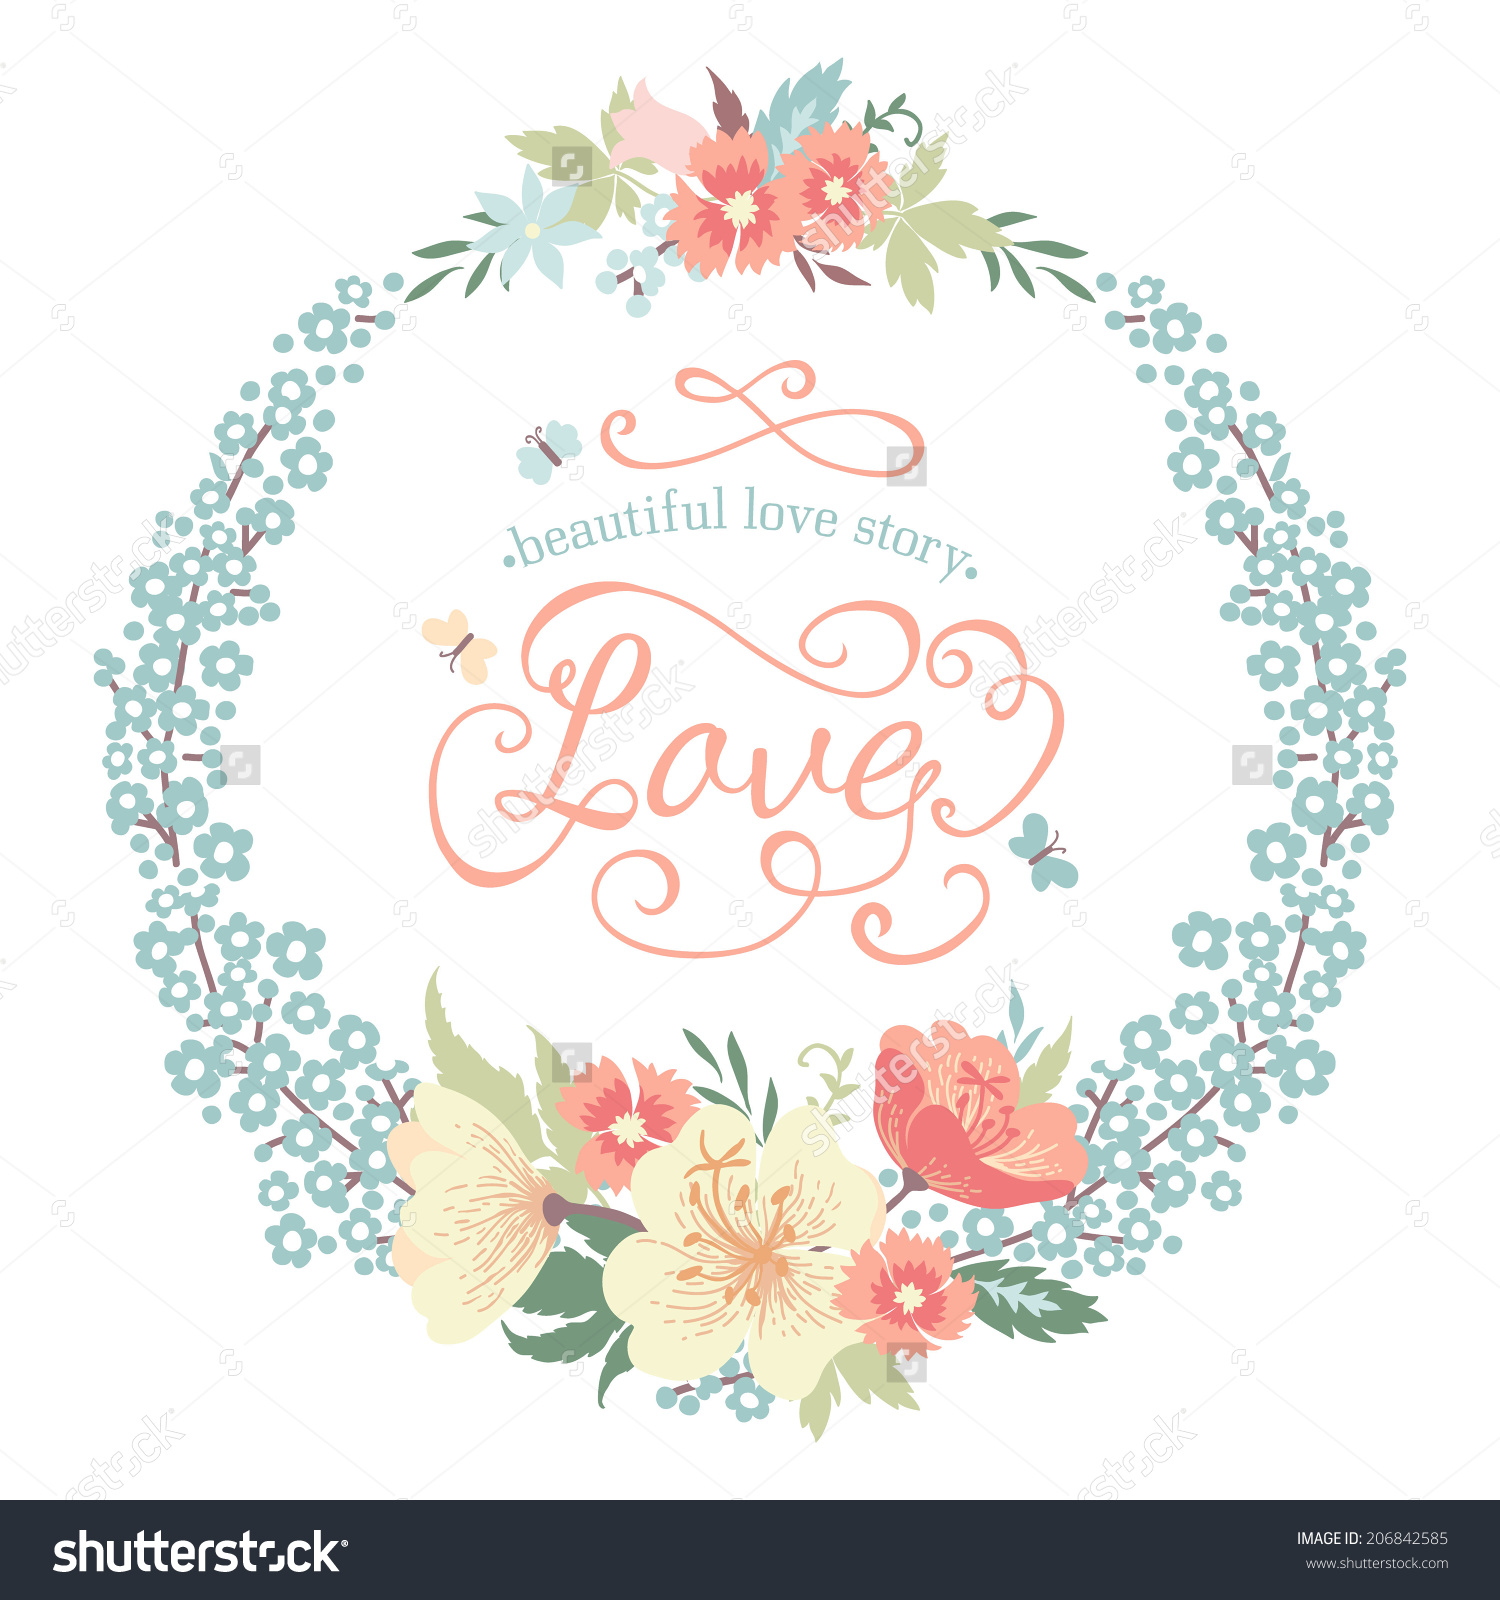 Wedding Round Floral Frame Flowers Pastel Stock Vector 206842585.